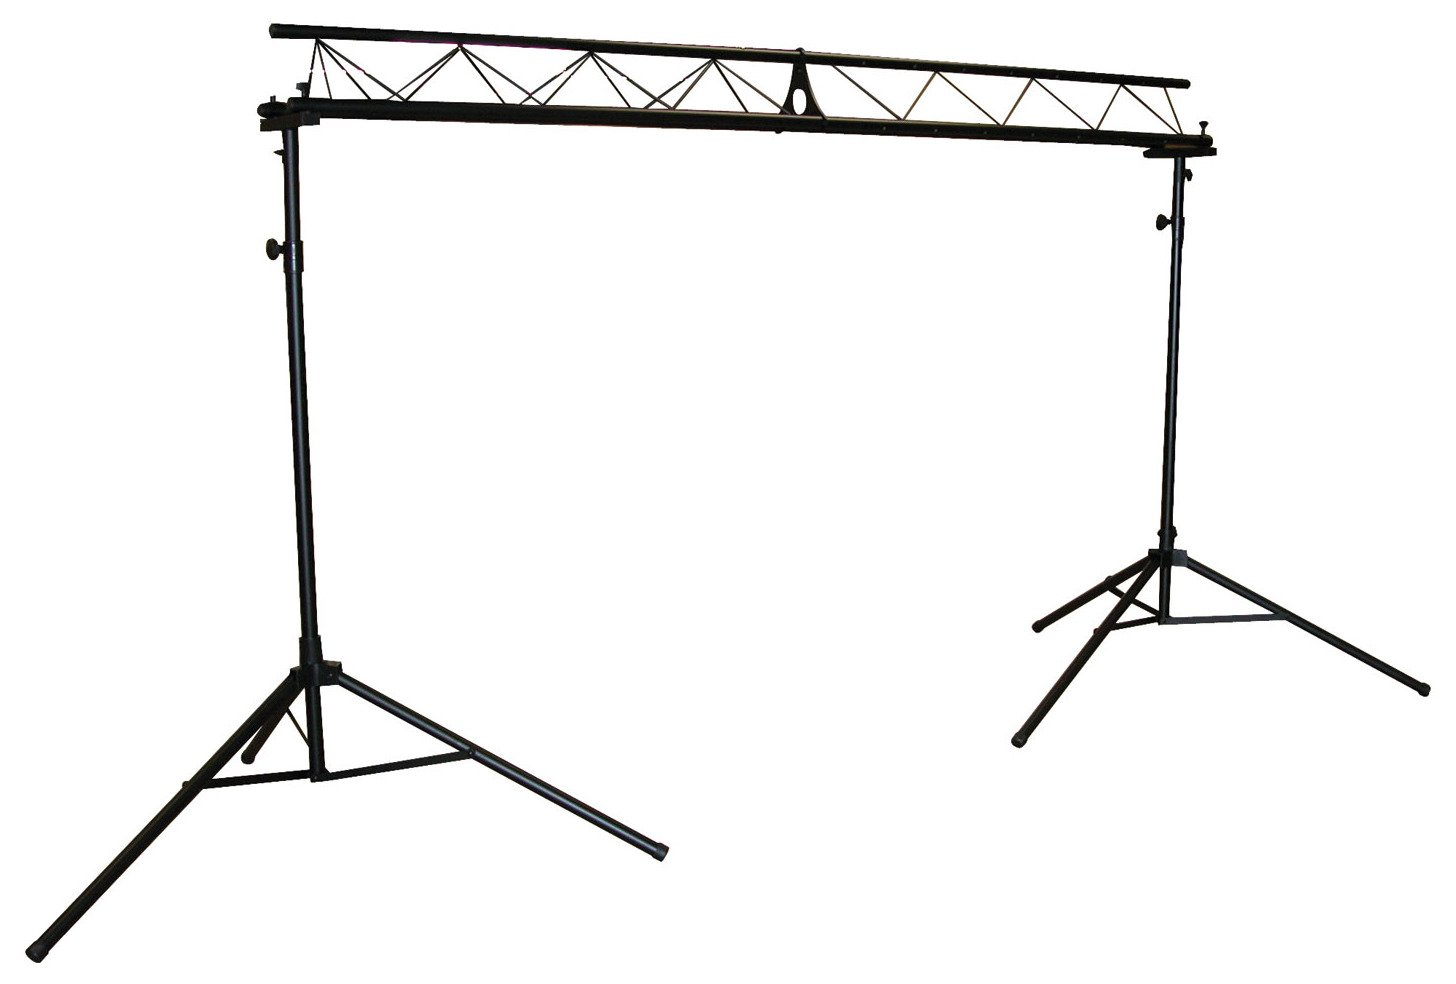 com display lighting in and rental trusses products dot systems system trade truss stage metal for services dj show redcarpetsystems